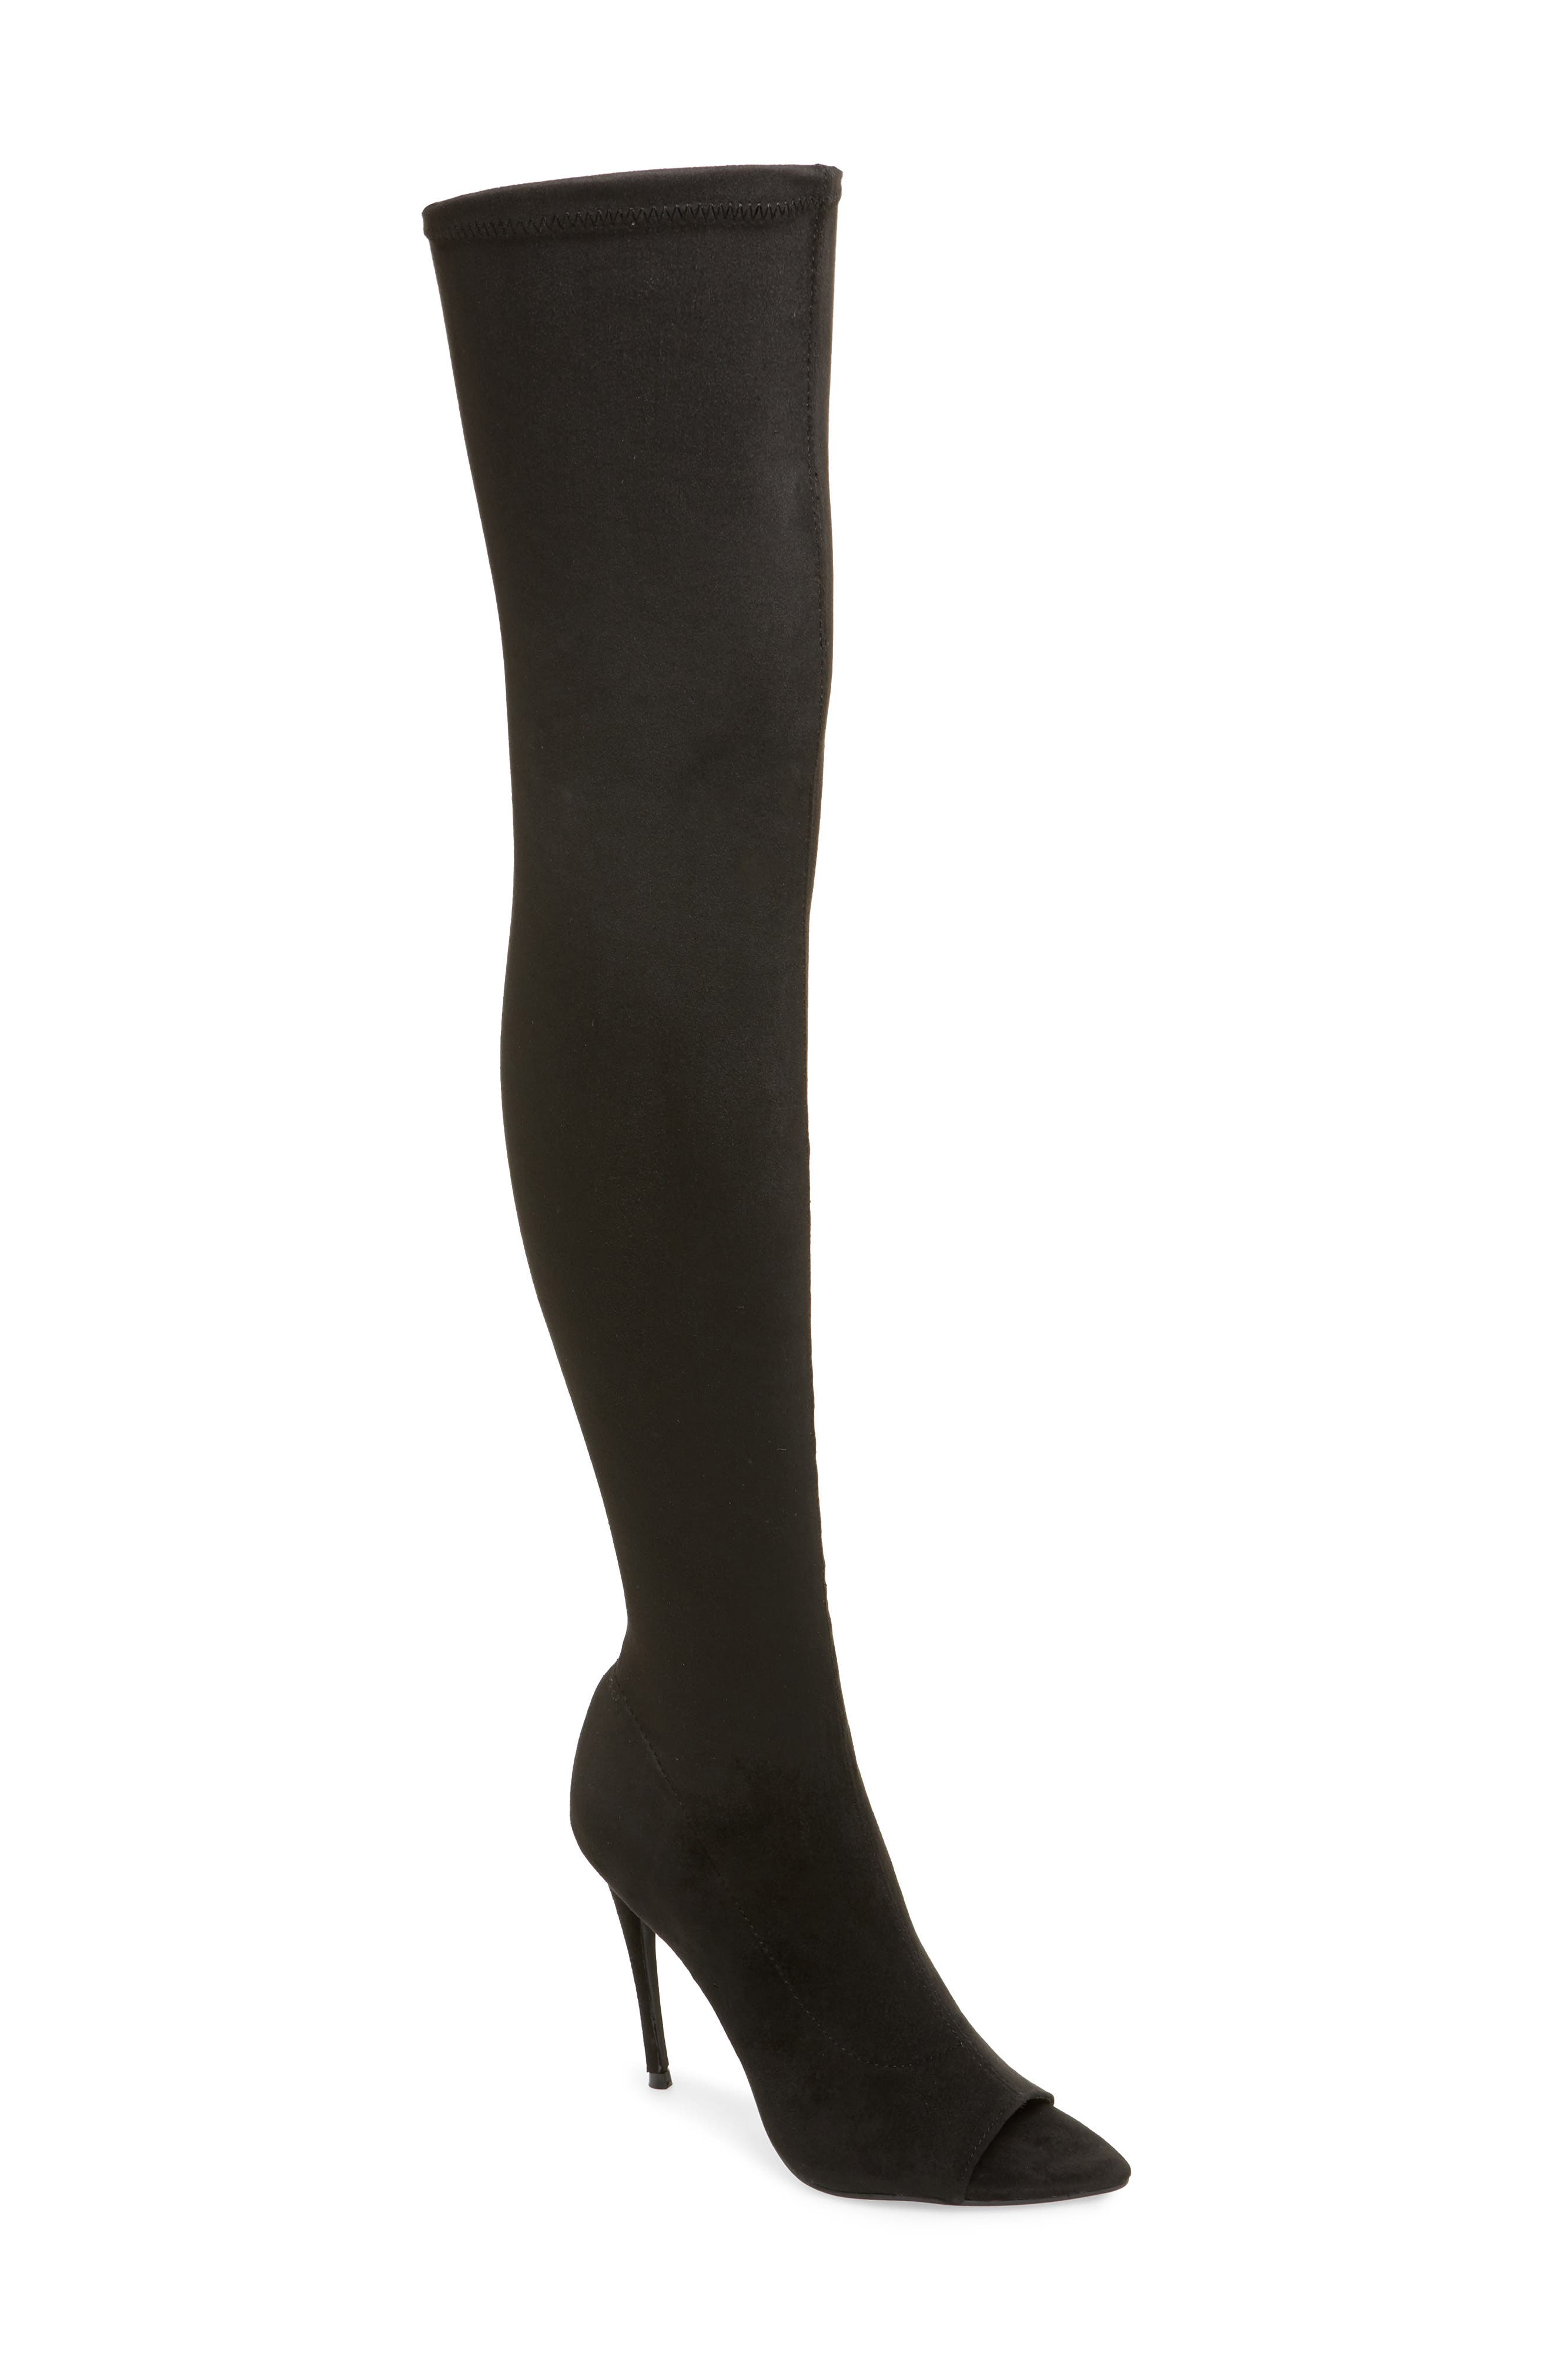 Forbidden Over the Knee Boot,                             Main thumbnail 1, color,                             BLACK